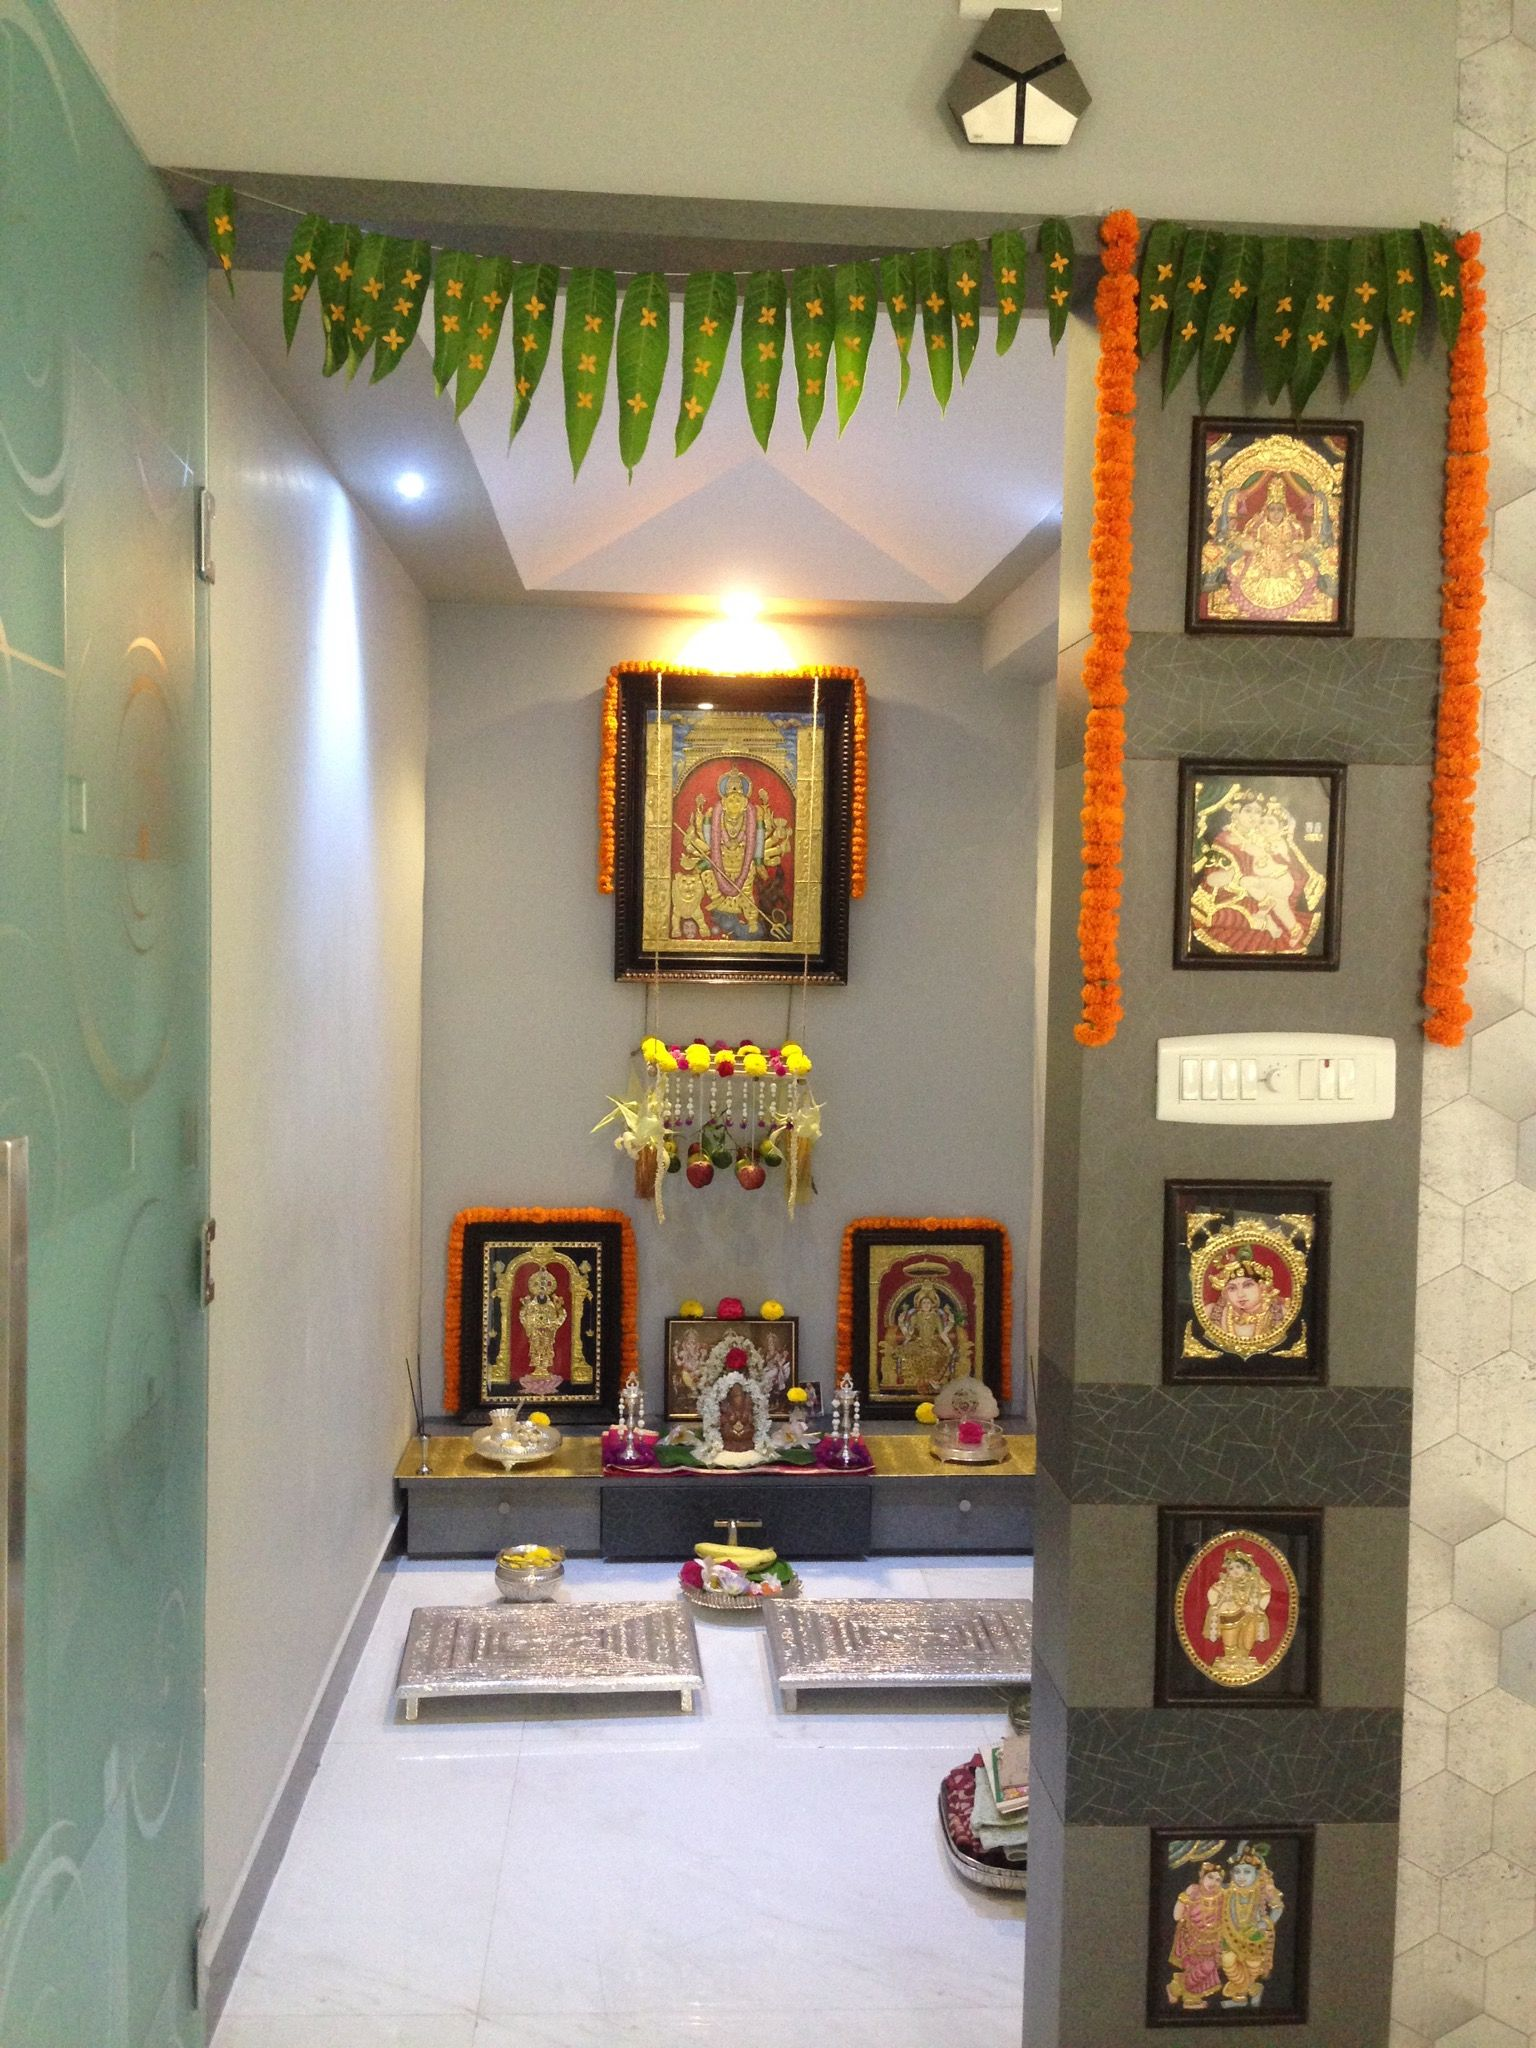 9 Traditional Pooja Room Door Designs In 2020: Pin By Jyoti Valiveti On Traditional Indian Home